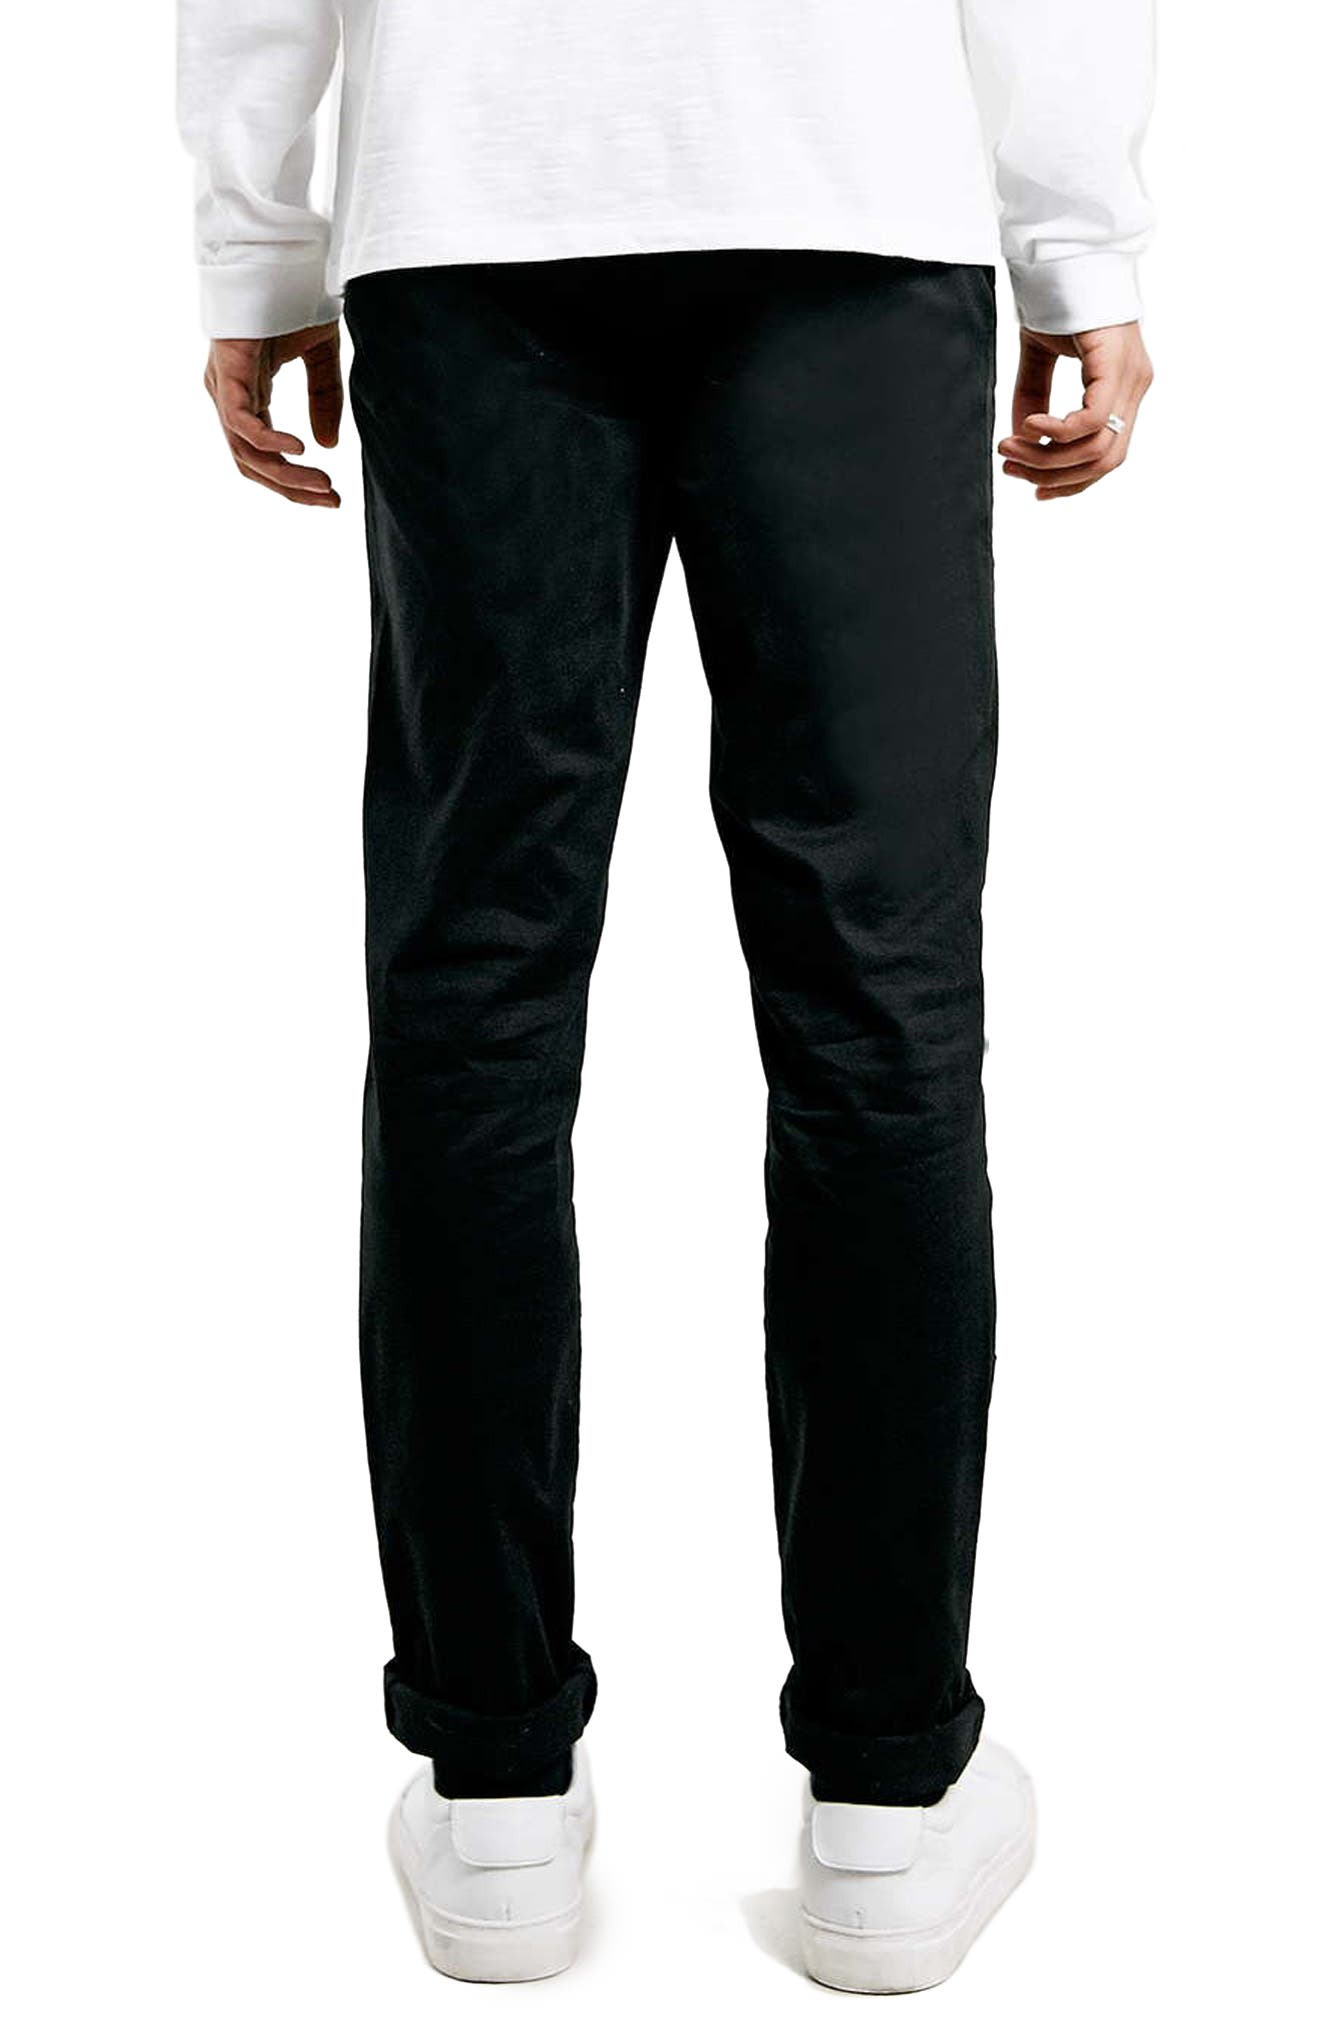 TOPMAN, Stretch Skinny Fit Chinos, Alternate thumbnail 2, color, BLACK